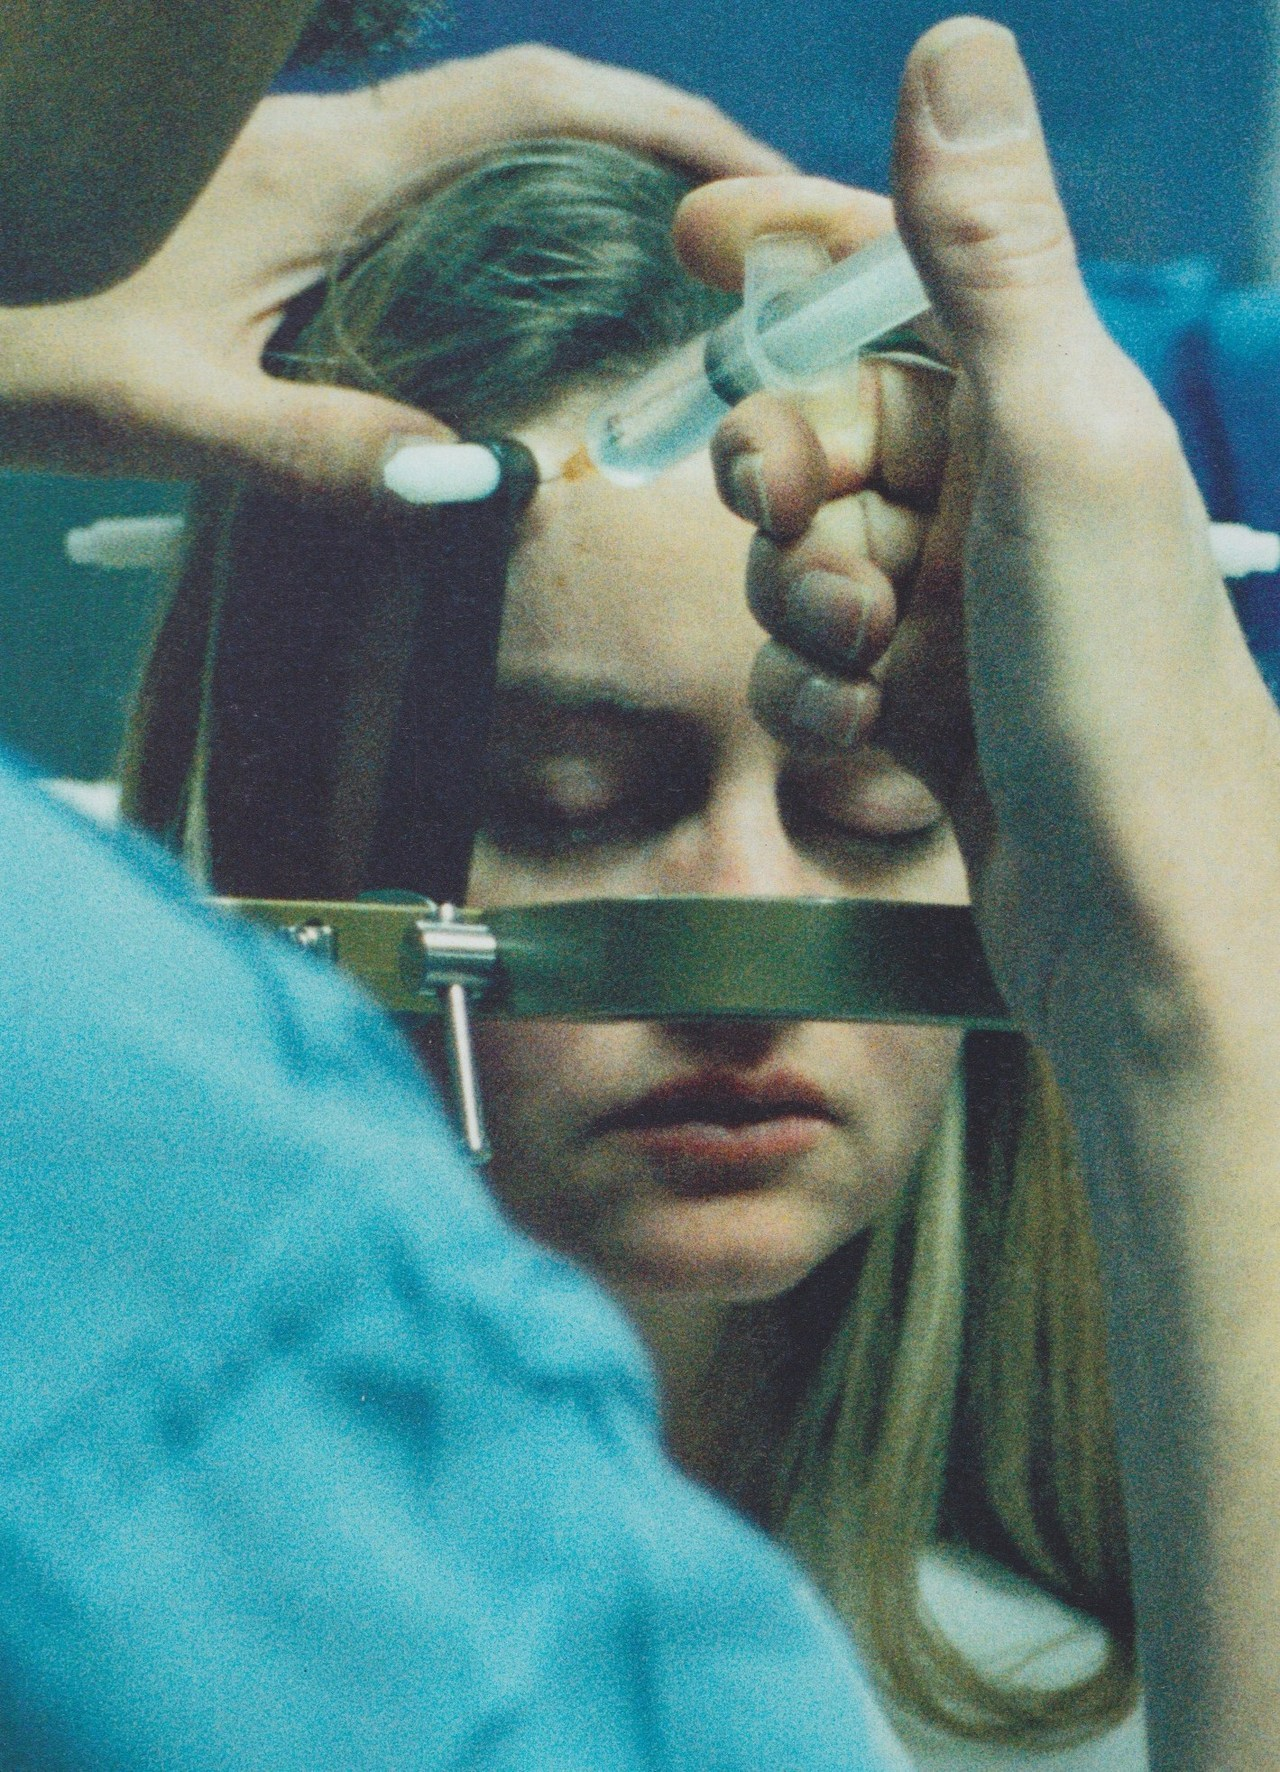 Me Just Before Brain Surgery, Corinne Day, London Hospital, 1996